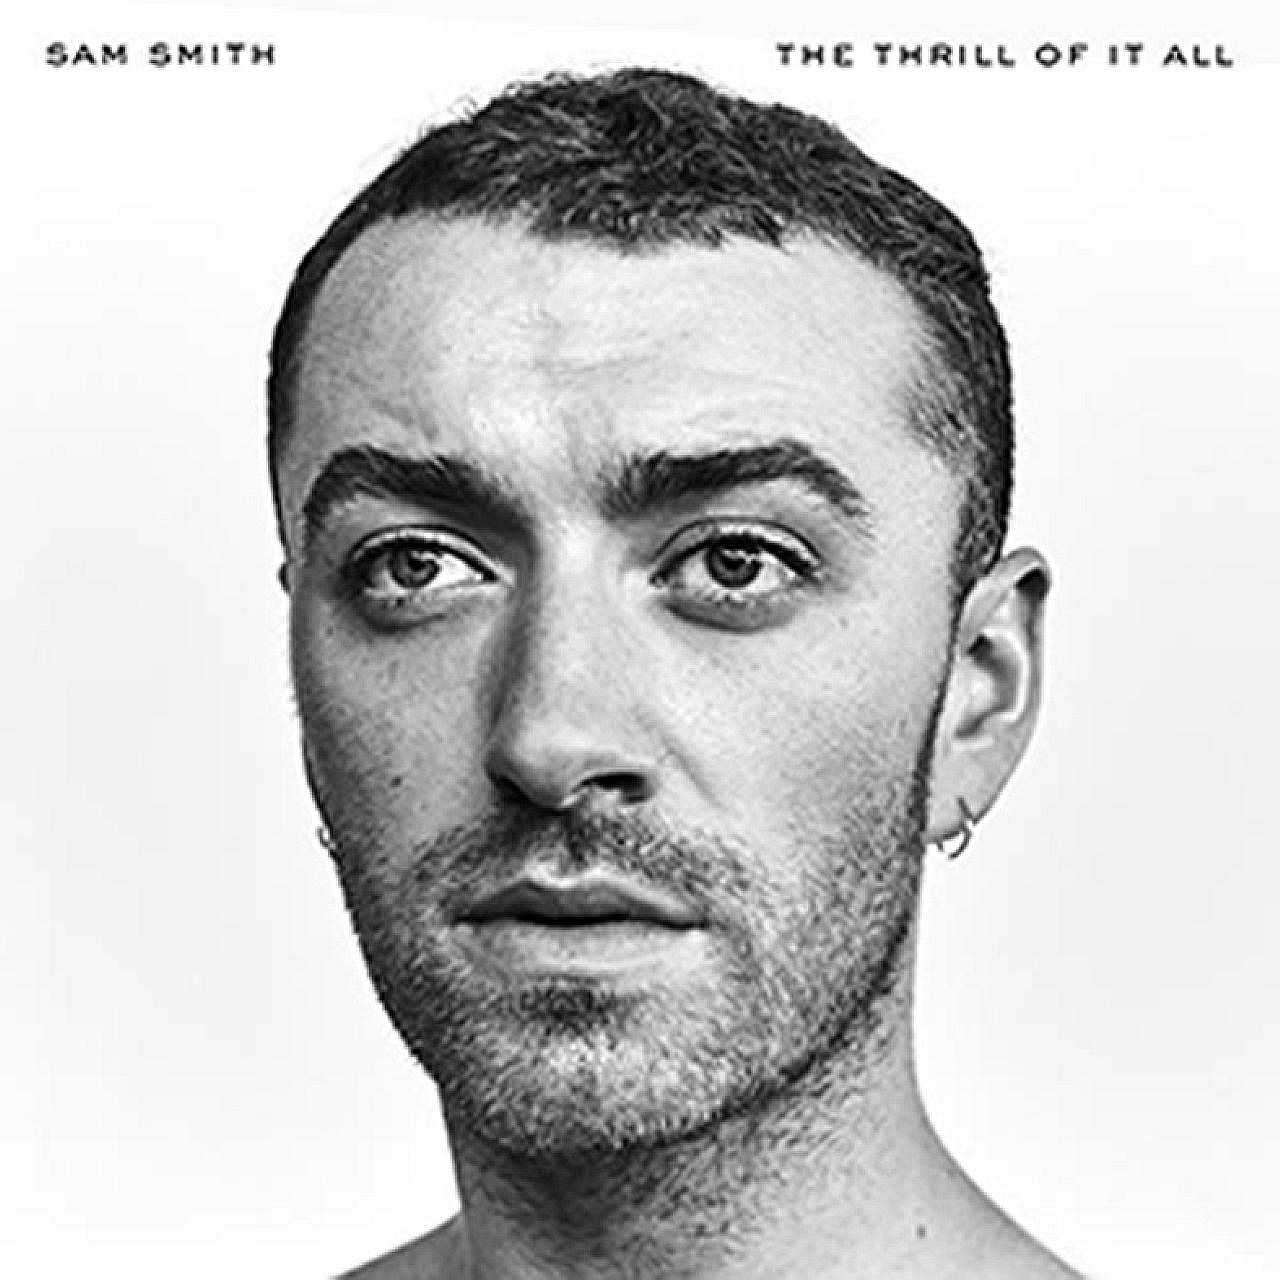 Sam Smith channels heartbreak in his second album, The Thrill Of It All.